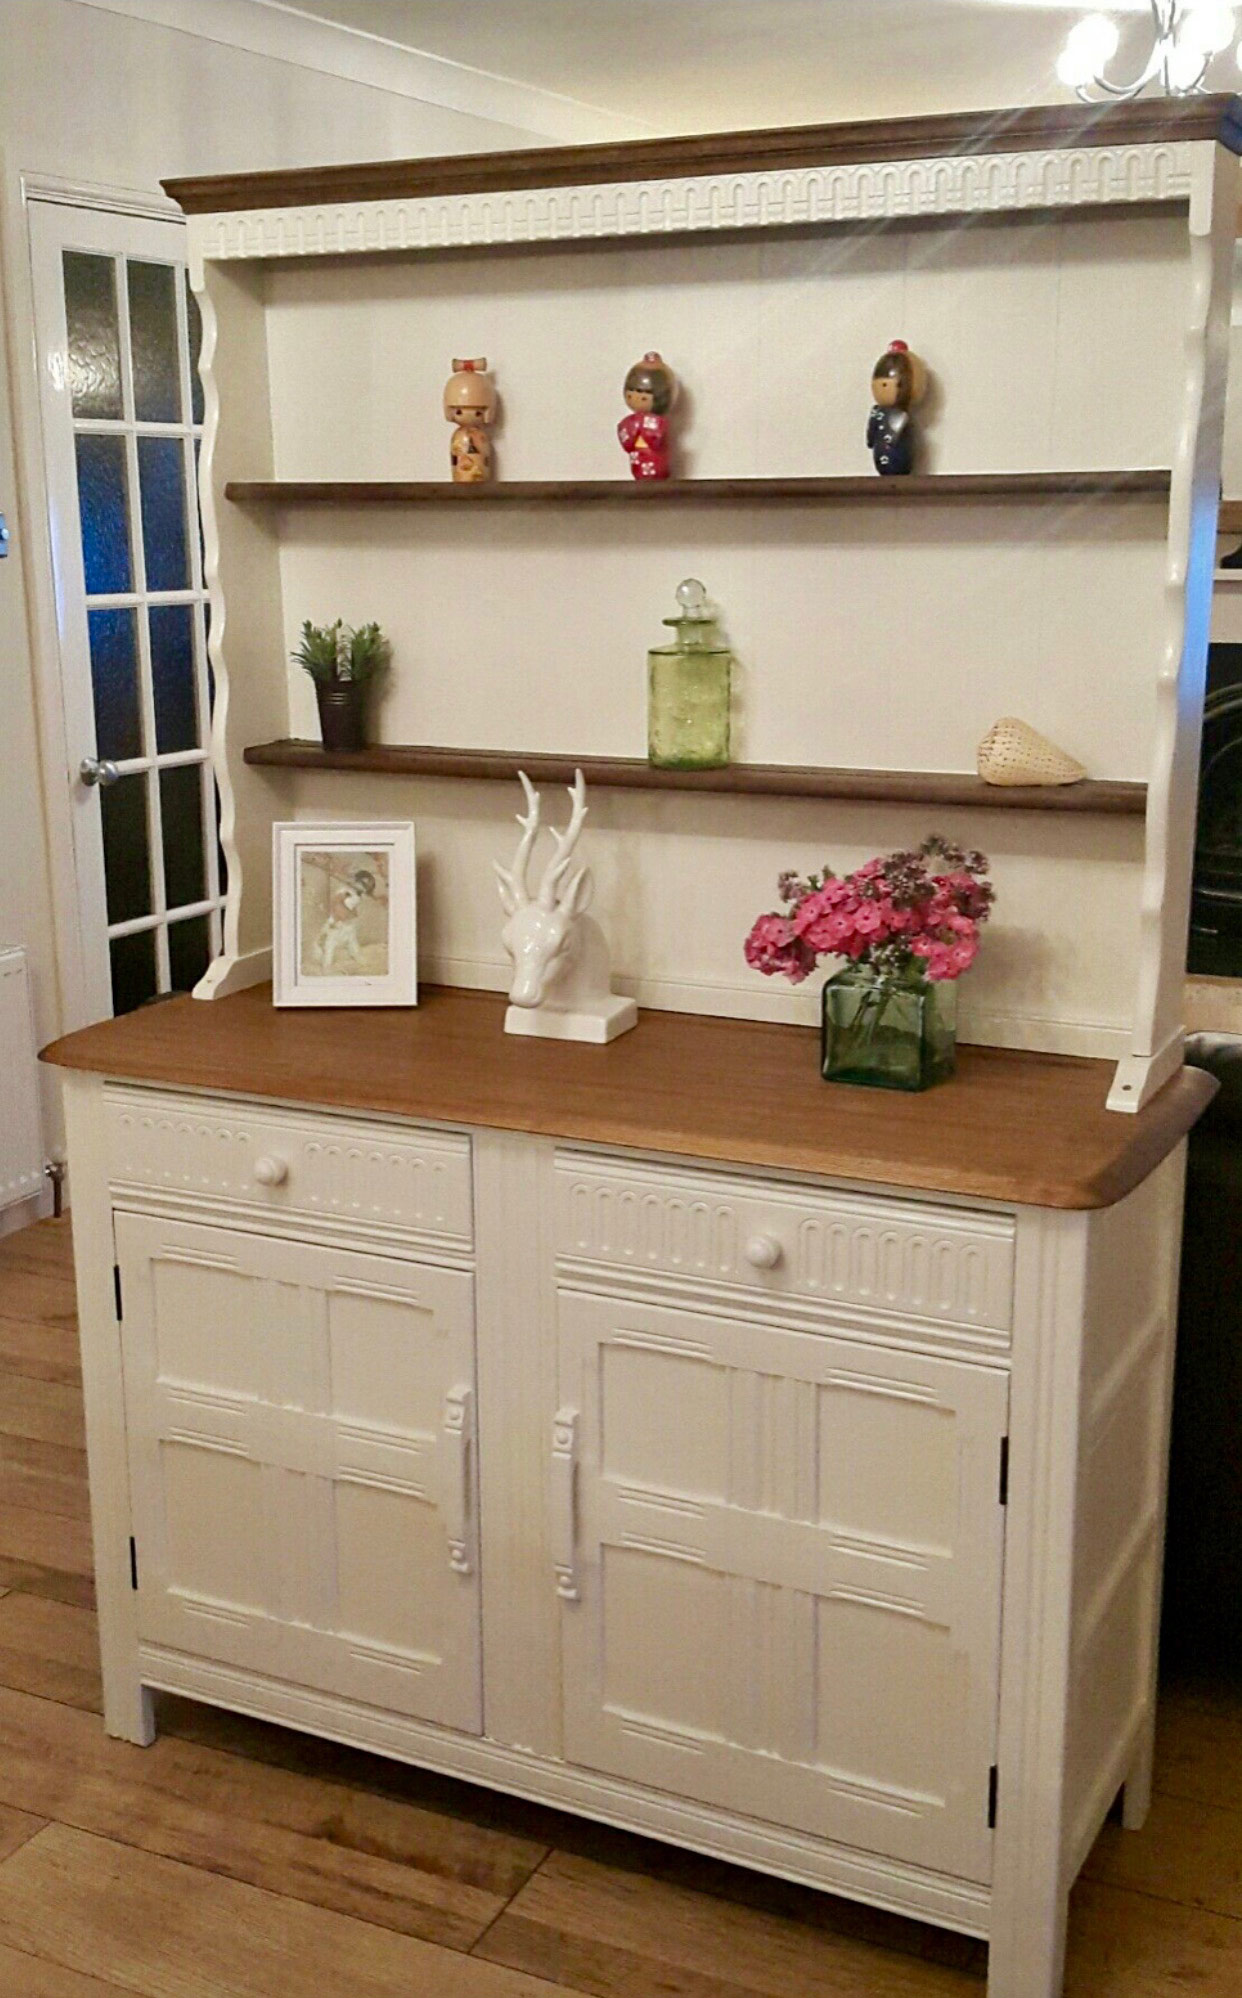 Wooden and white cabinet with shelves